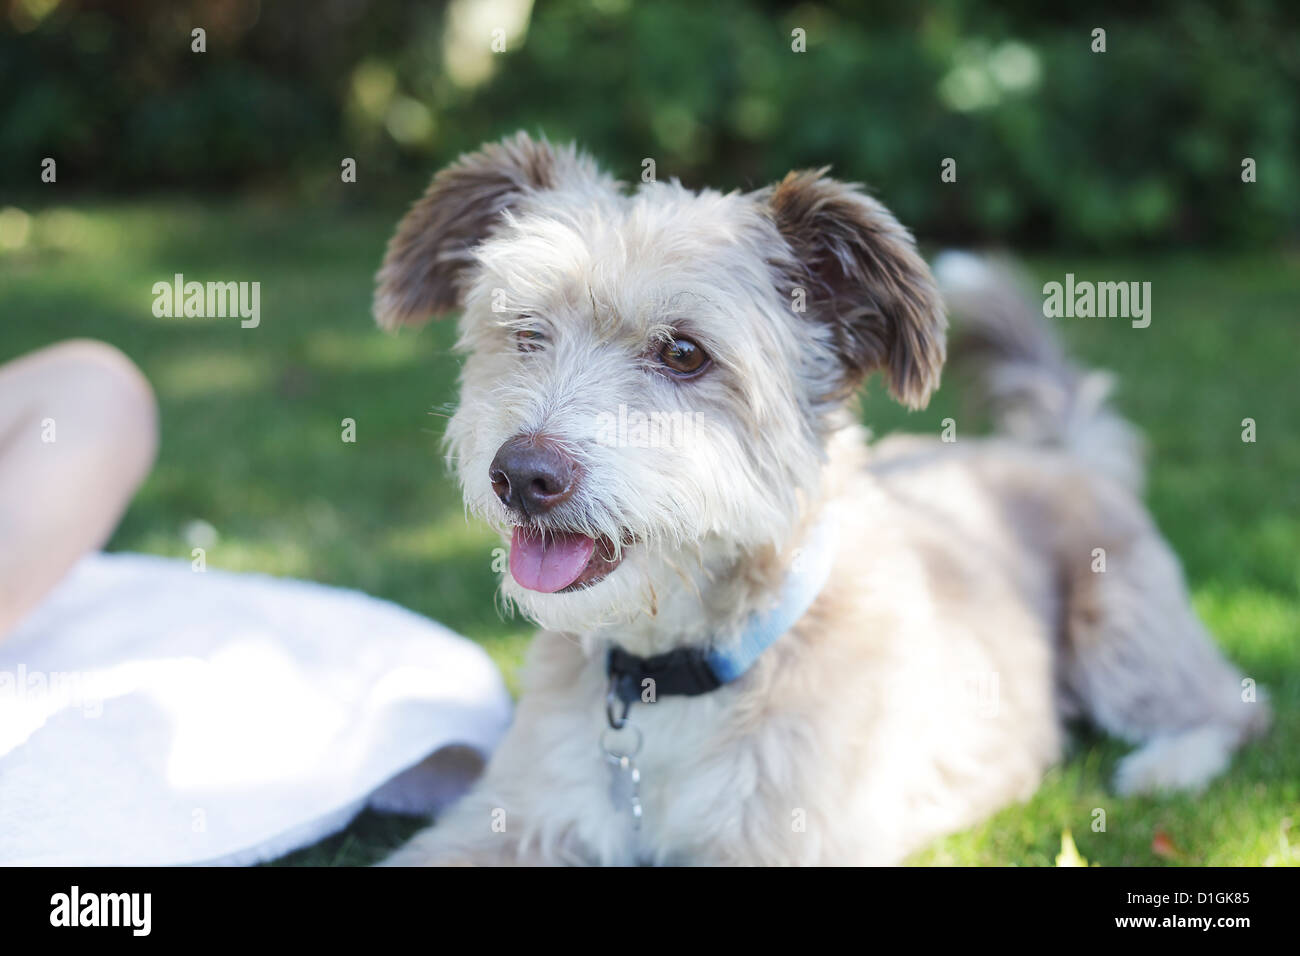 Small cute gray fluffy dog outside in a garden. - Stock Image